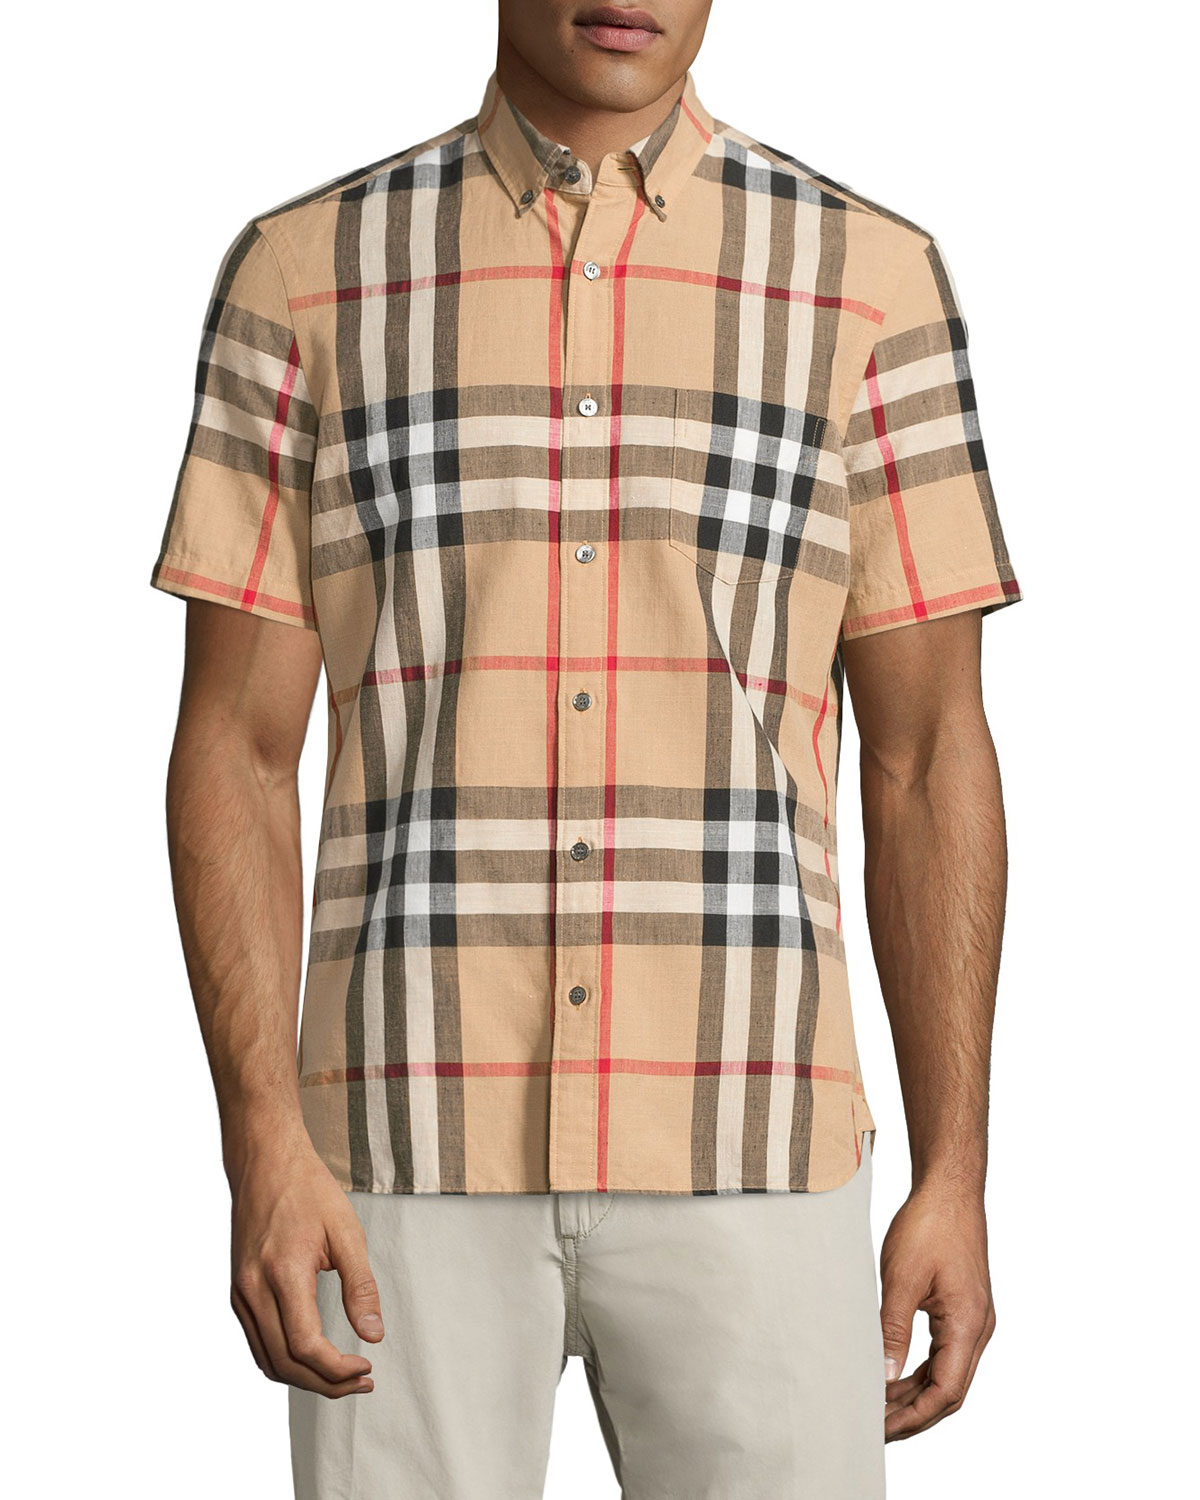 Linen-Blend Exploded Check Short-Sleeve Shirt, Camel